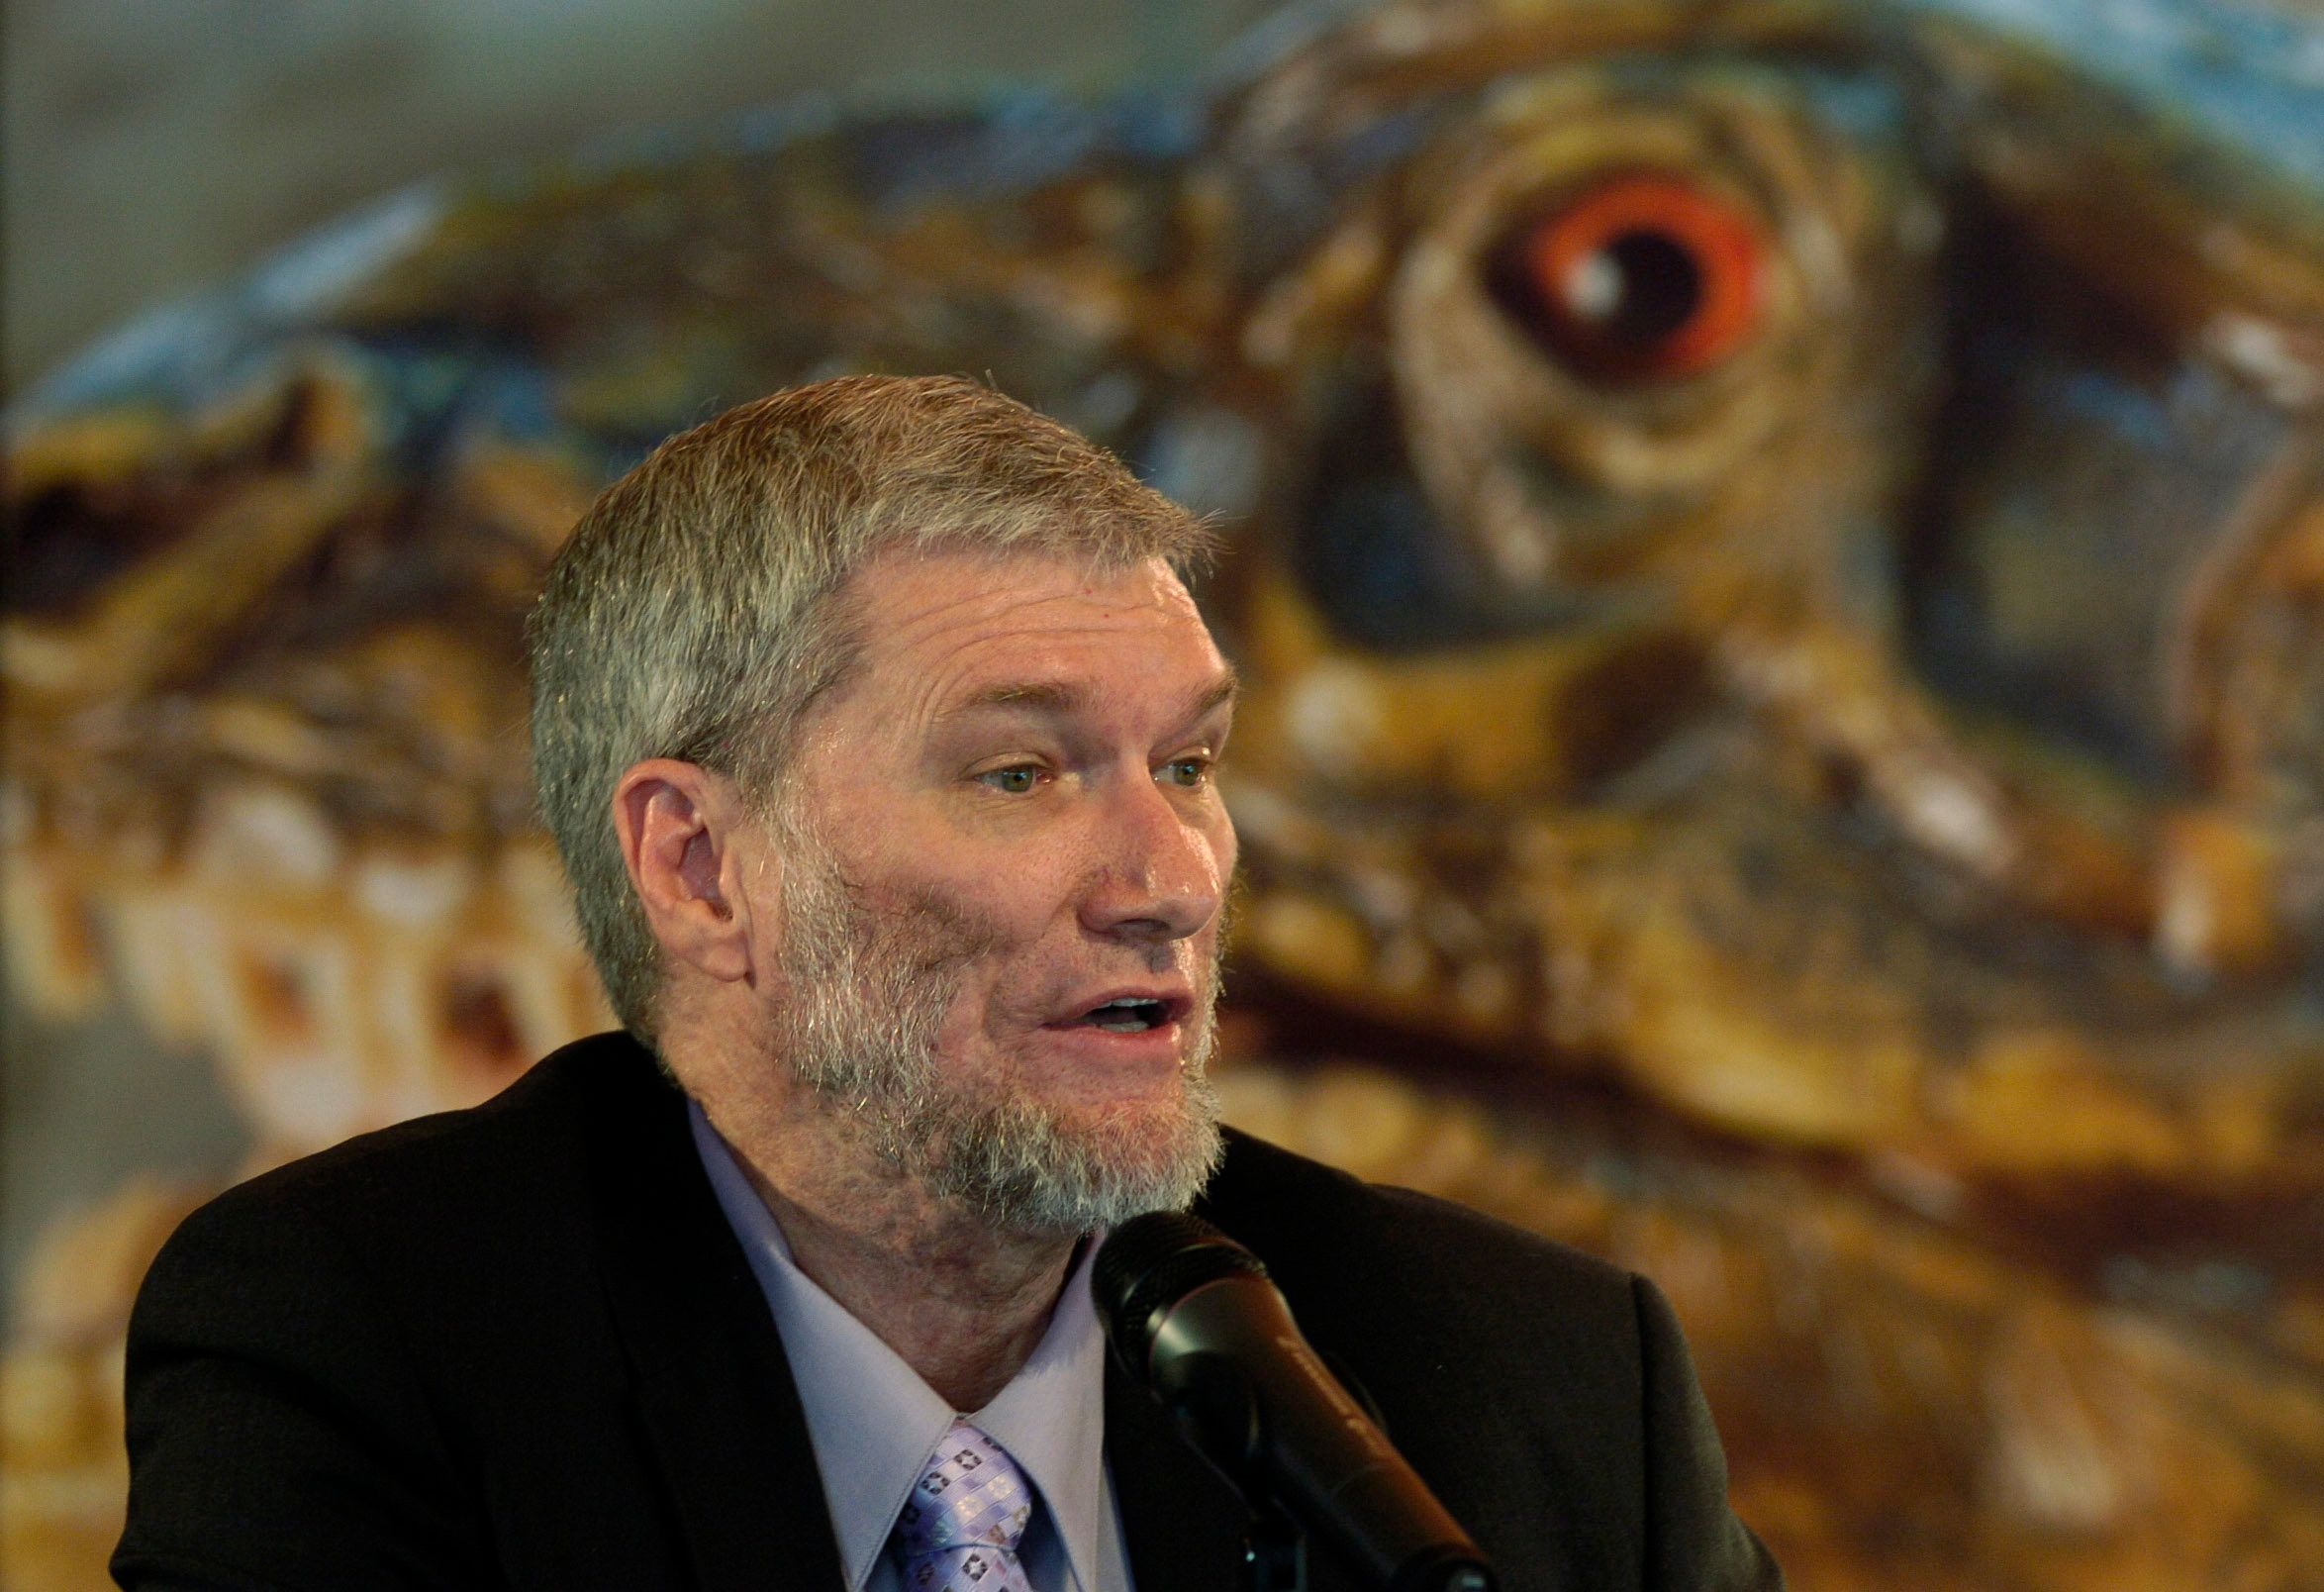 Creationist Ken Ham Gets Into Weirdest Twitter Fight Over